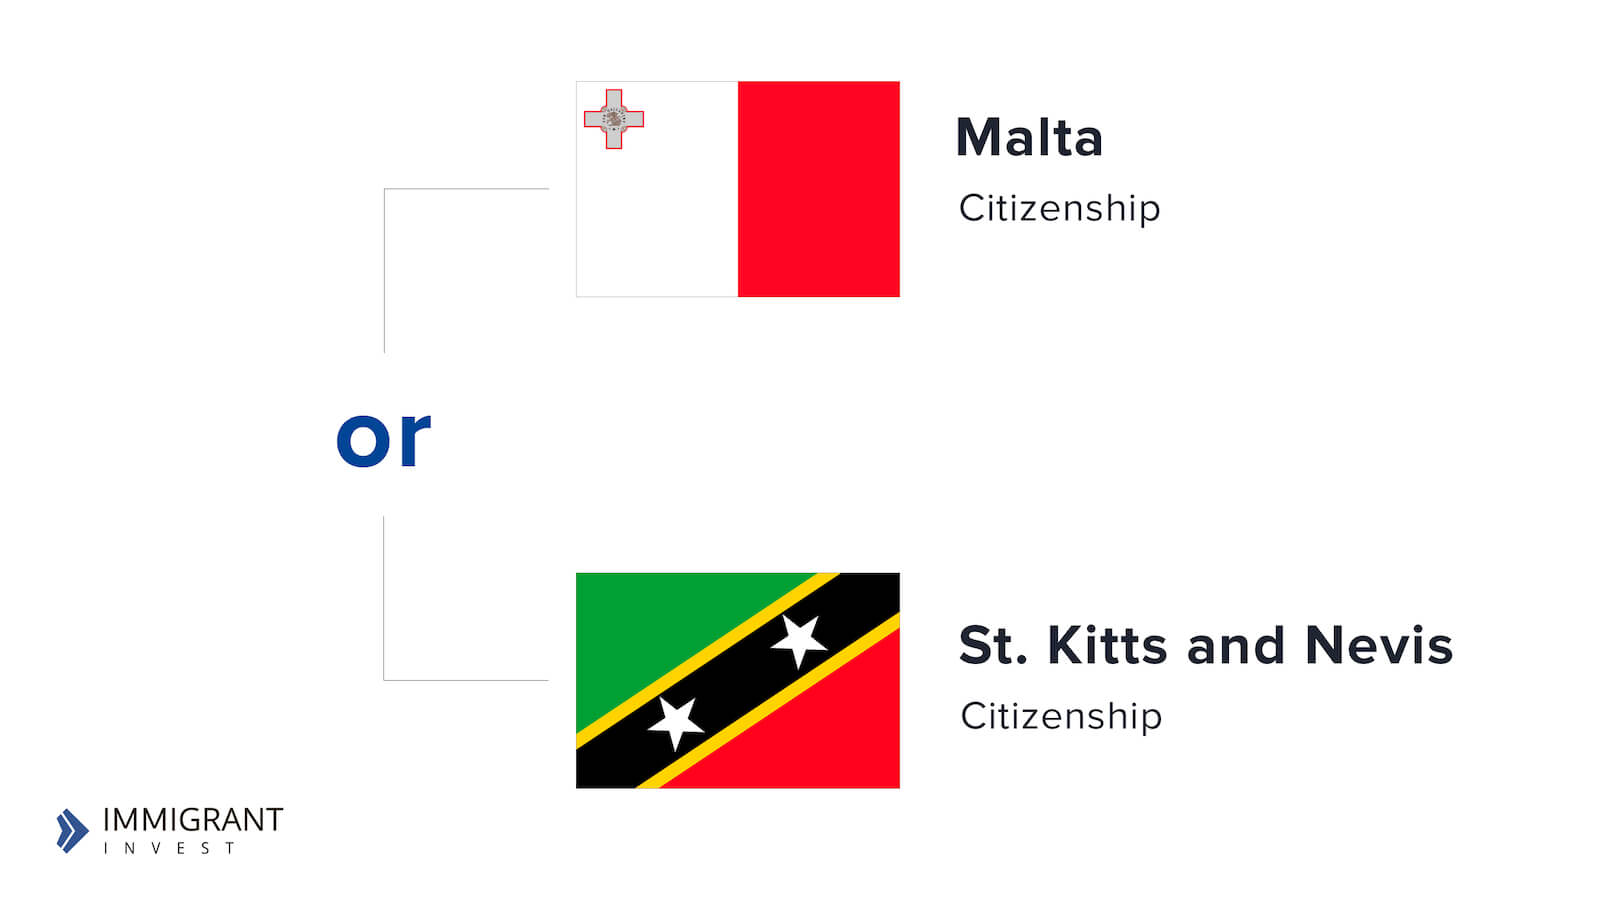 Malta Citizenchip or St. Kitts and Nevis Citizenship